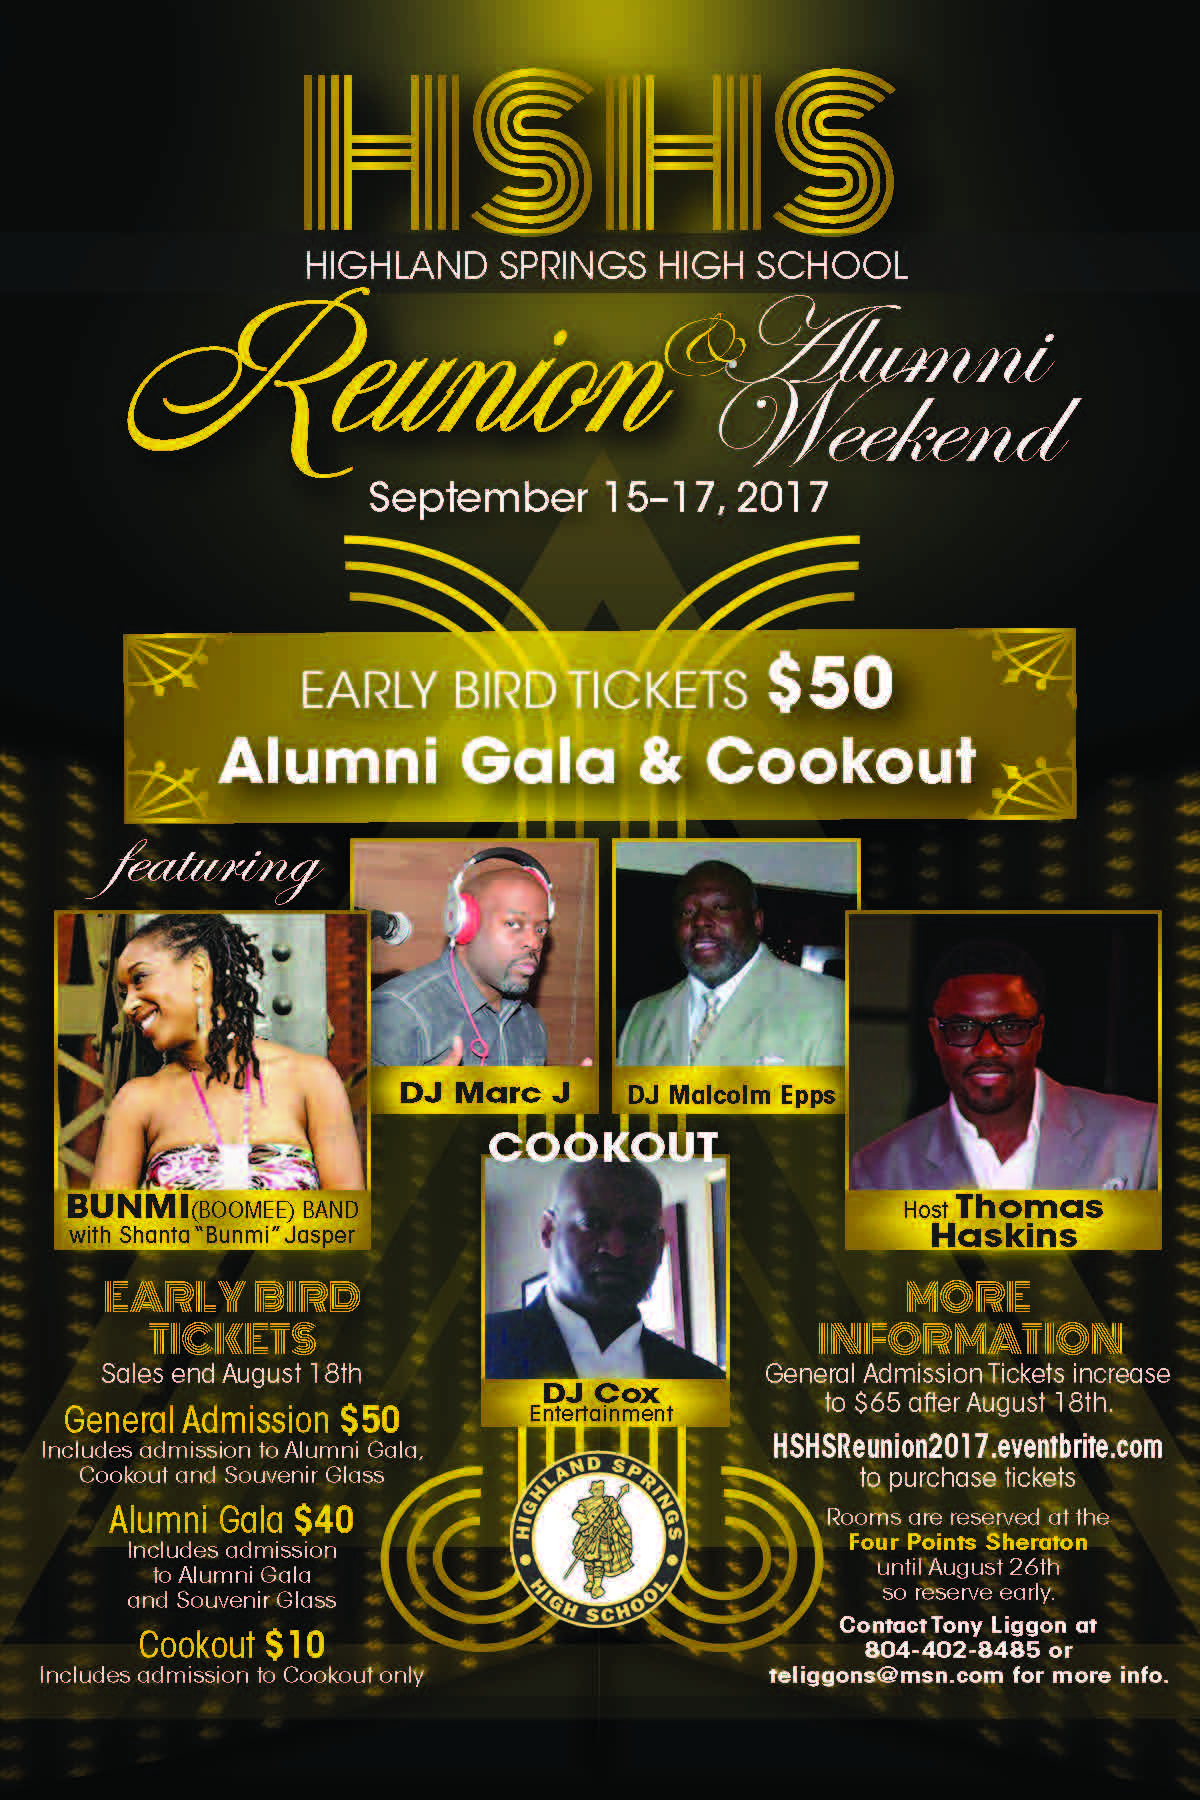 Highland Springs High School Reunion & Alumni Weekend Gala and Cookout details